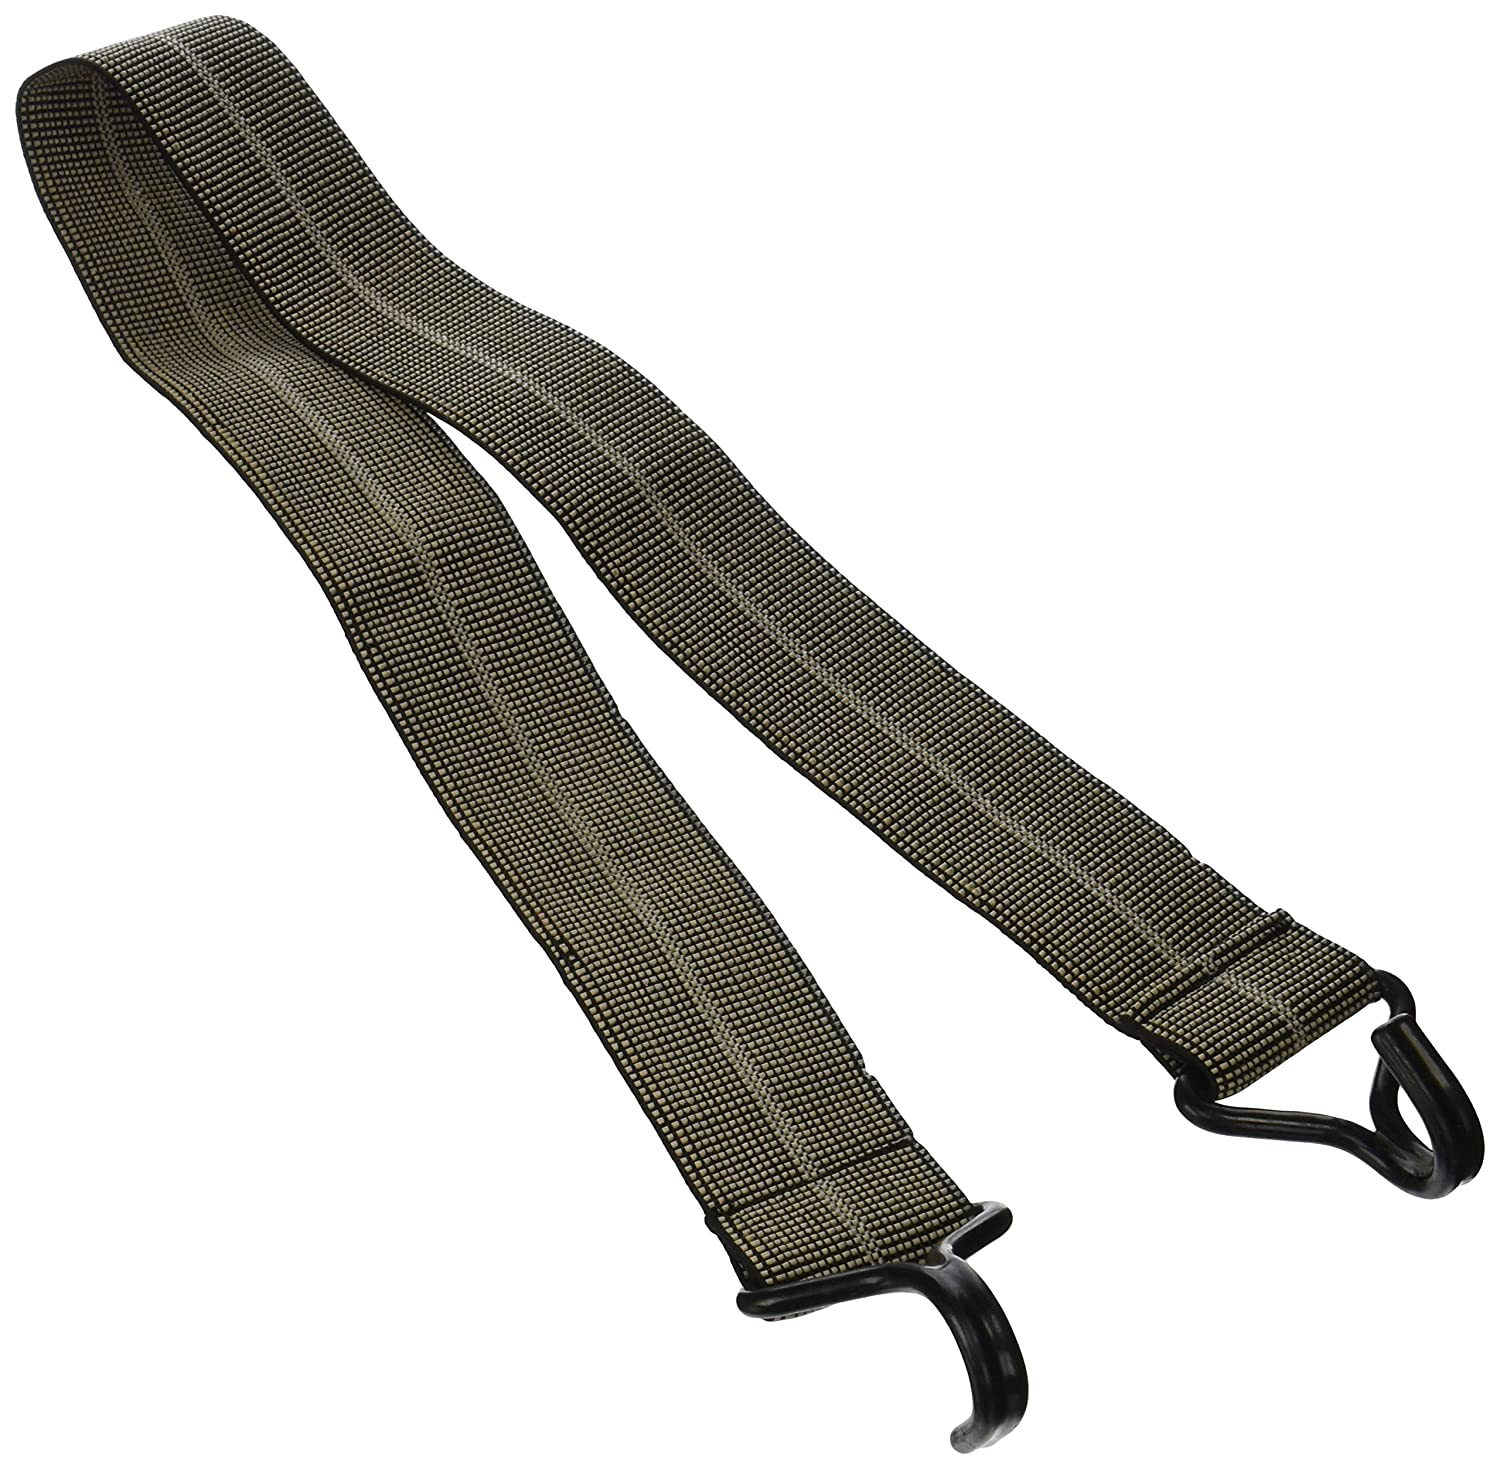 2-Inch x 48-Inch CargoLoc 32428 Wide Stretch Strap with Coated Steel J-Hooks